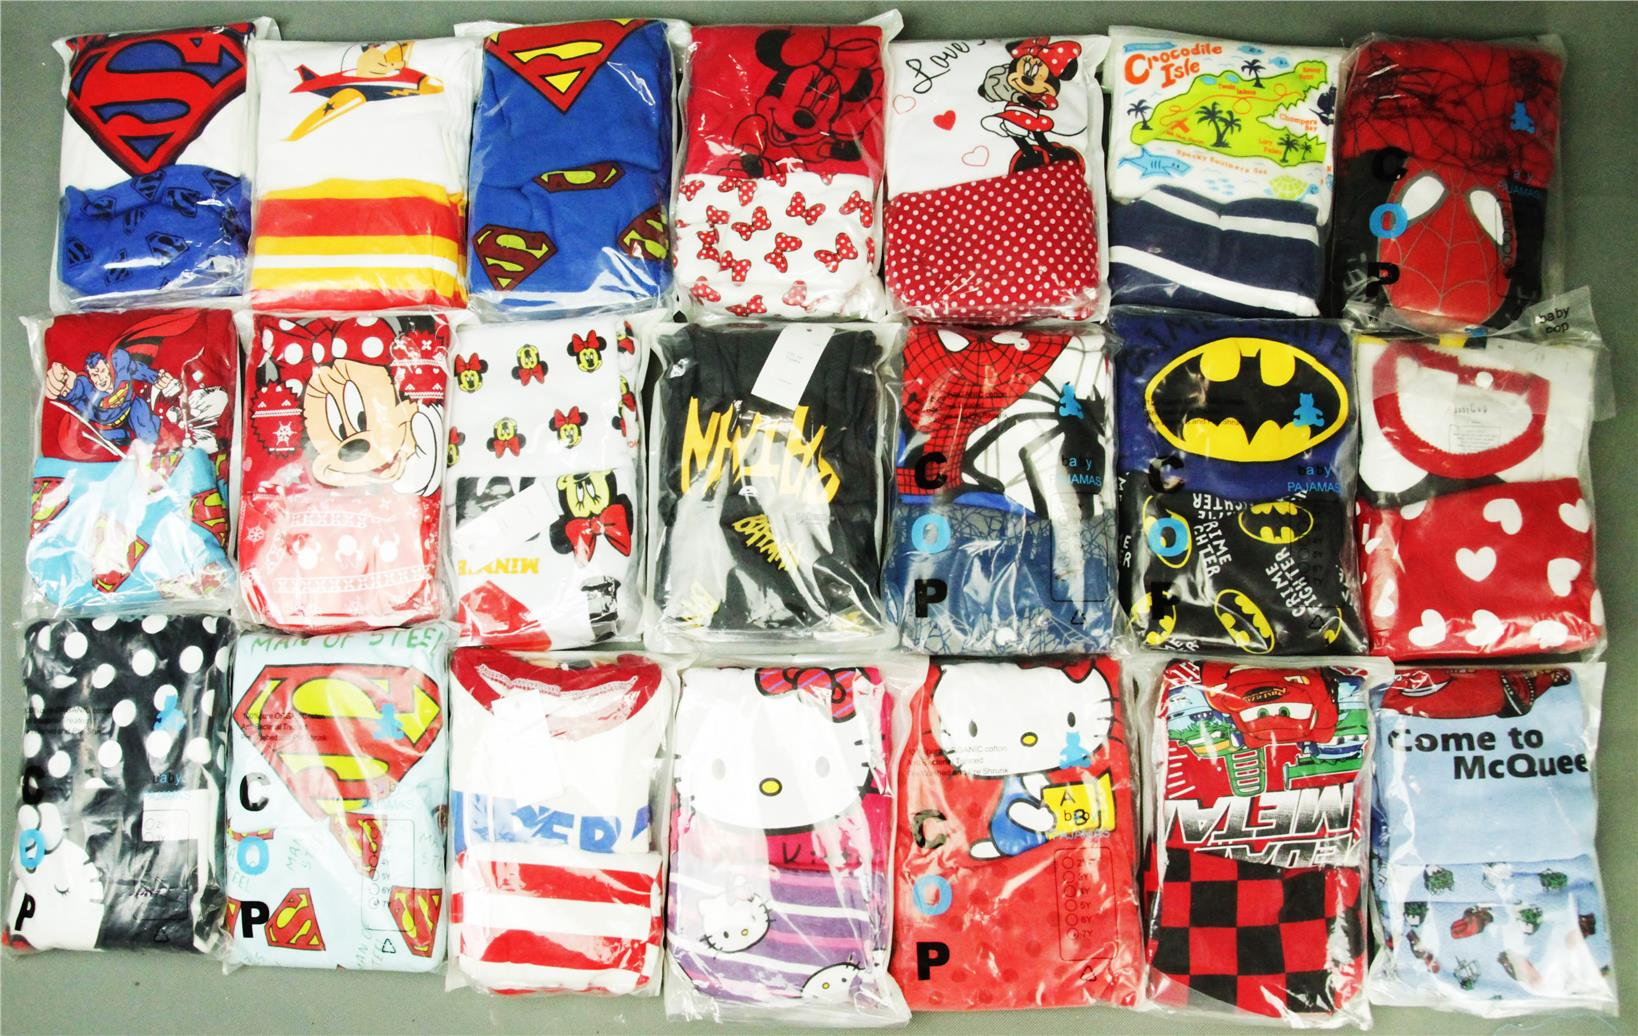 CHILDREN,PYJAMAS,PASANG,TIDUR,CARTOON,DISNEY,JUSTICE,DARK,KNIGHT,DC